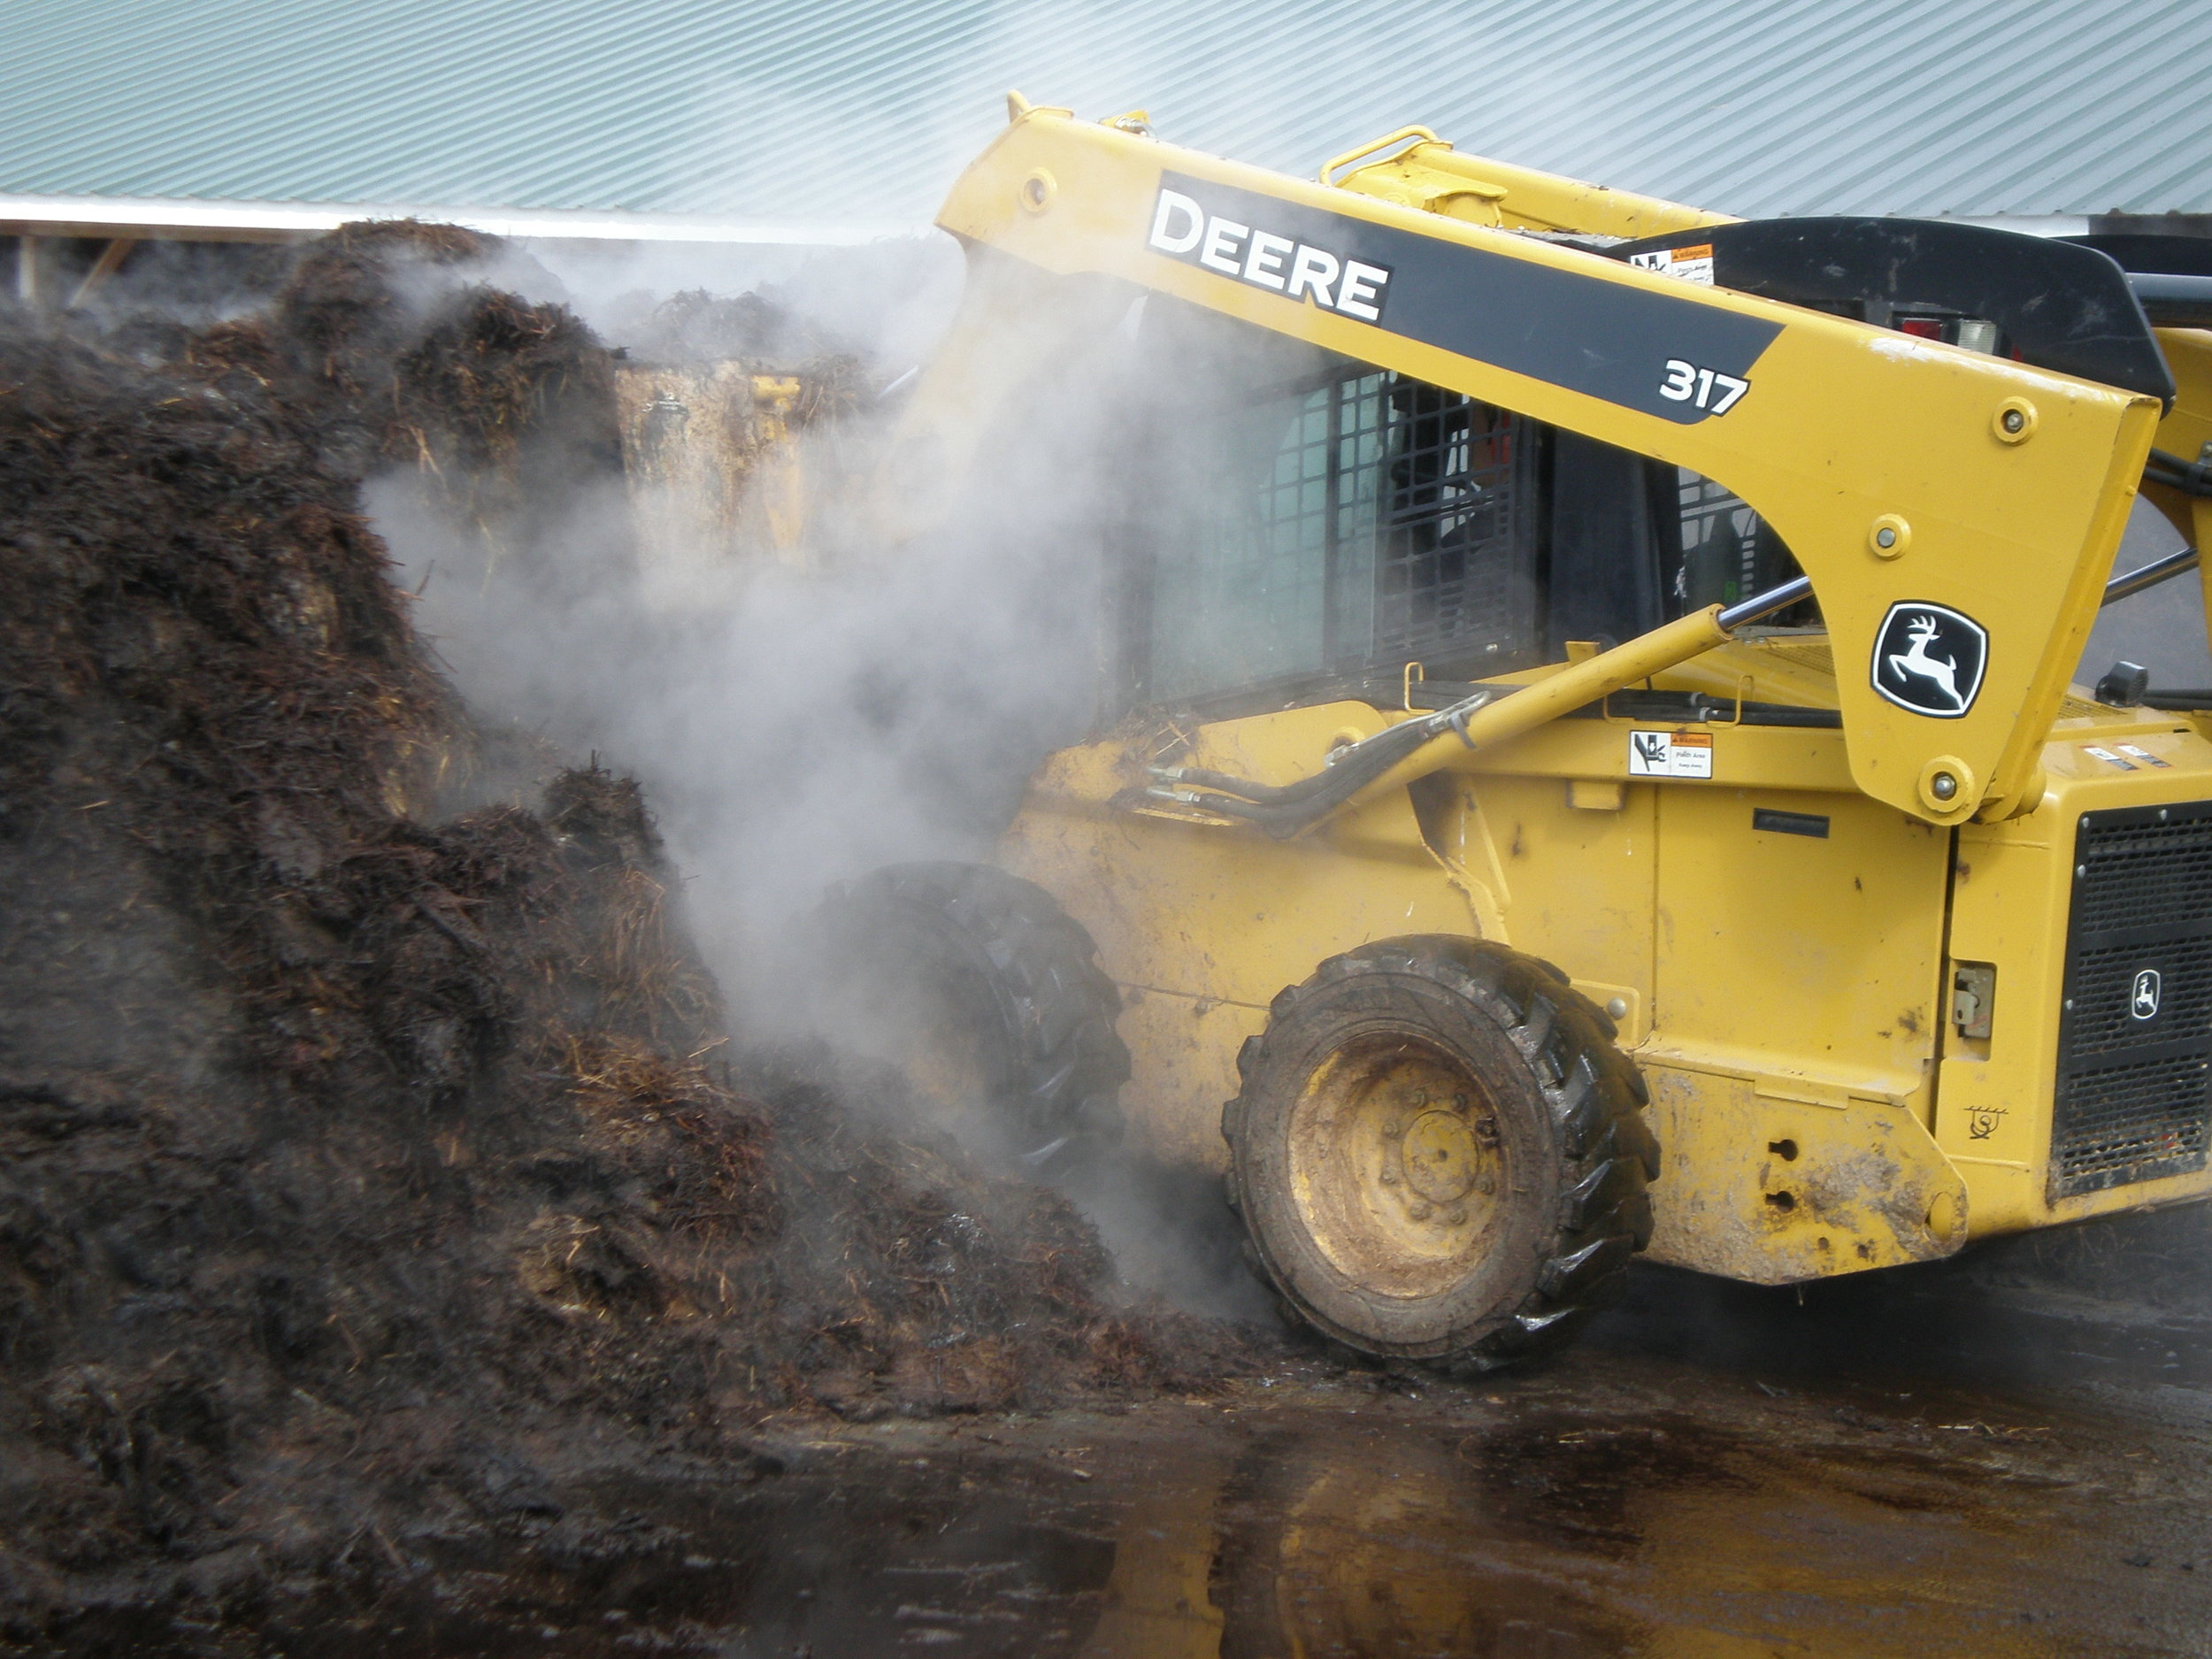 manure is turned between once and three times daily, depending on the stage of the compost process. the heat from the decomposing bedded pack creates enough steam to obscure the skid steer.